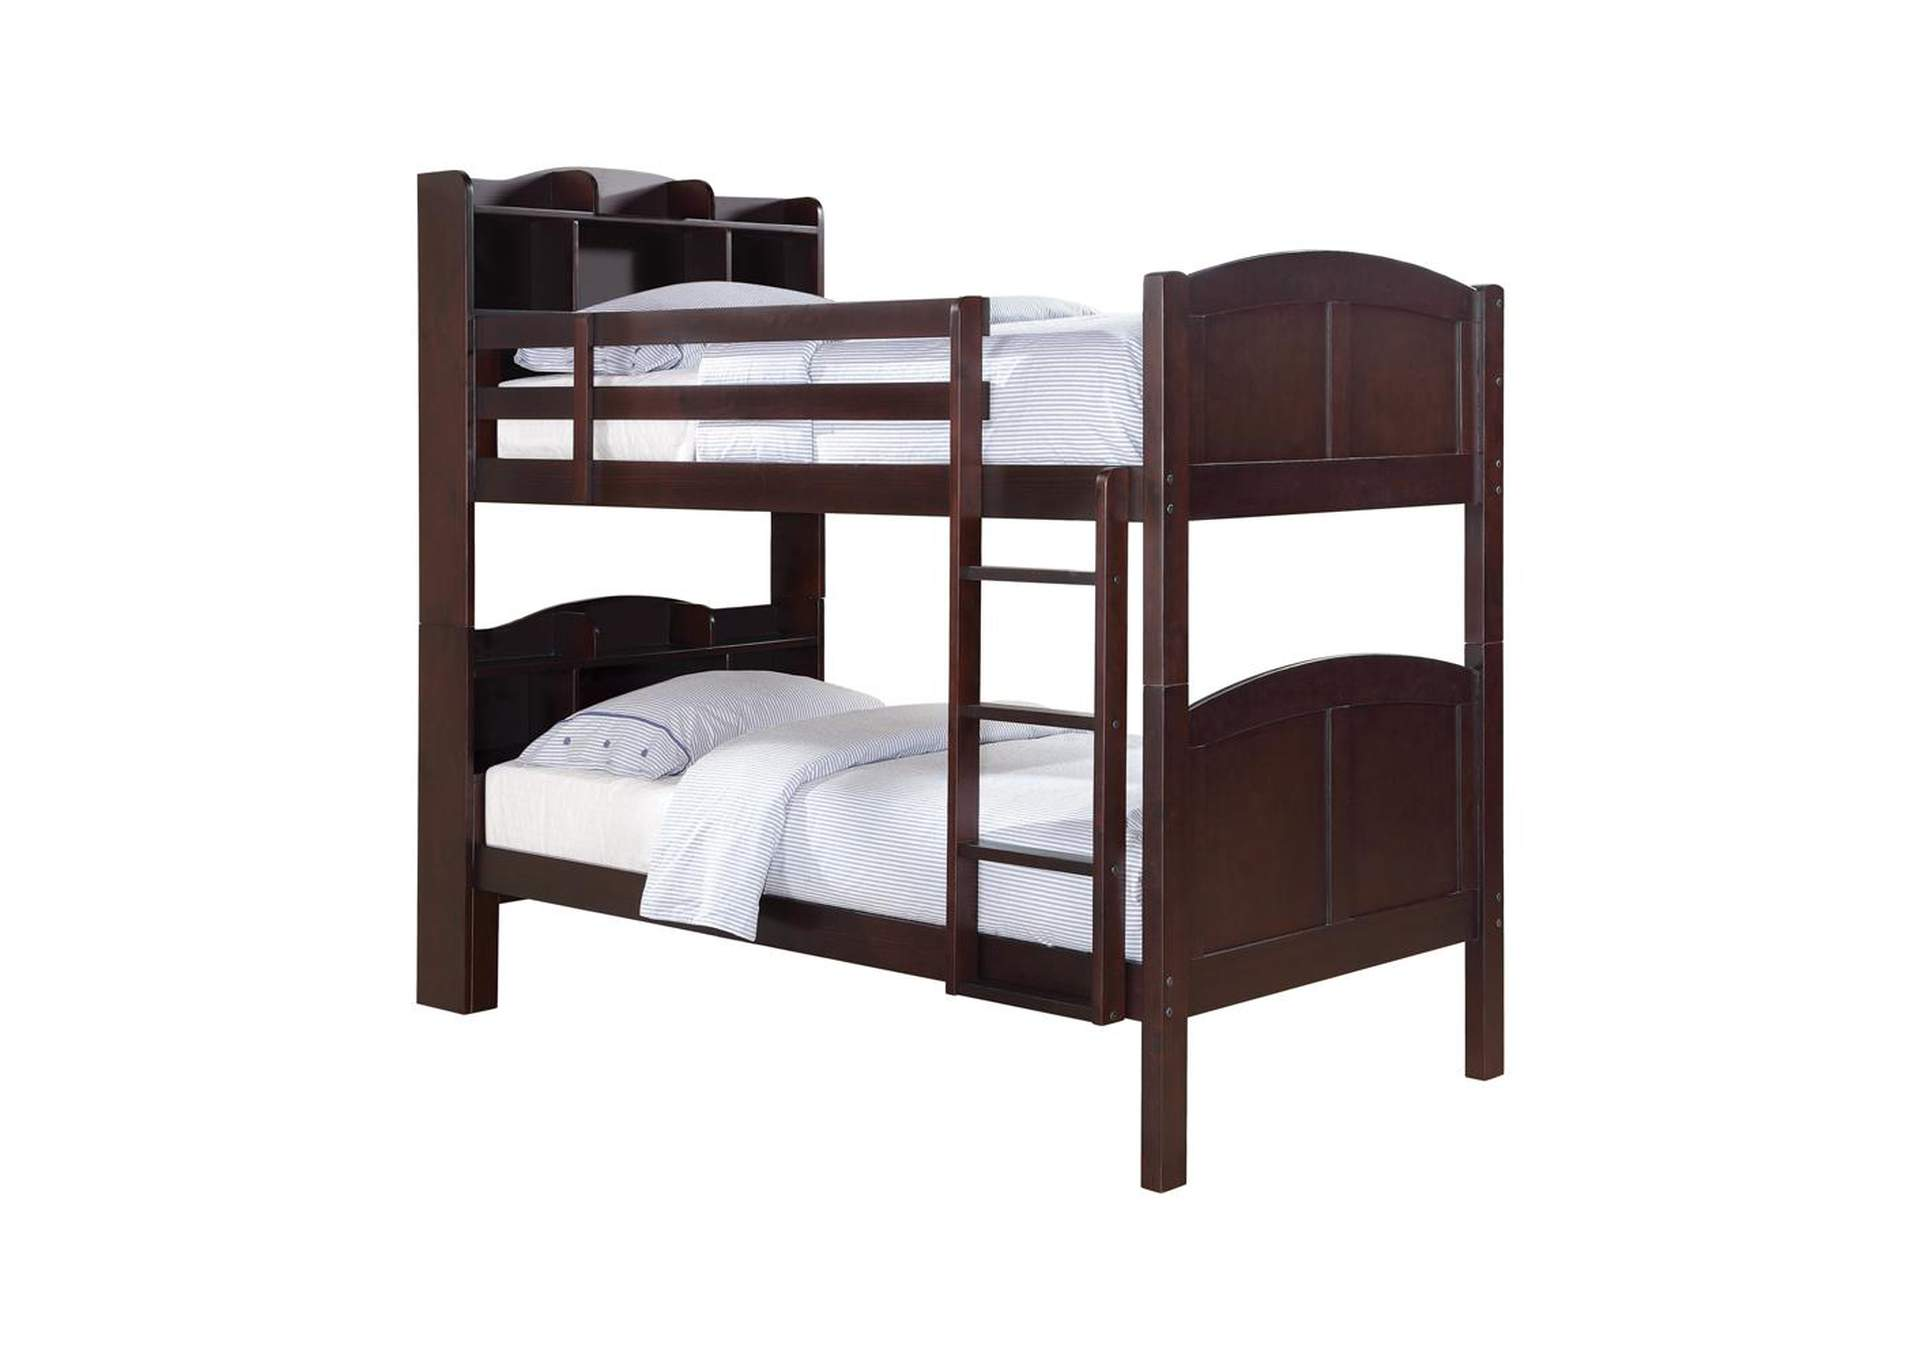 Parker Cappuccino Twin-over-Twin Bunk Bed W/ Bookcase Storage Headboard,Coaster Furniture